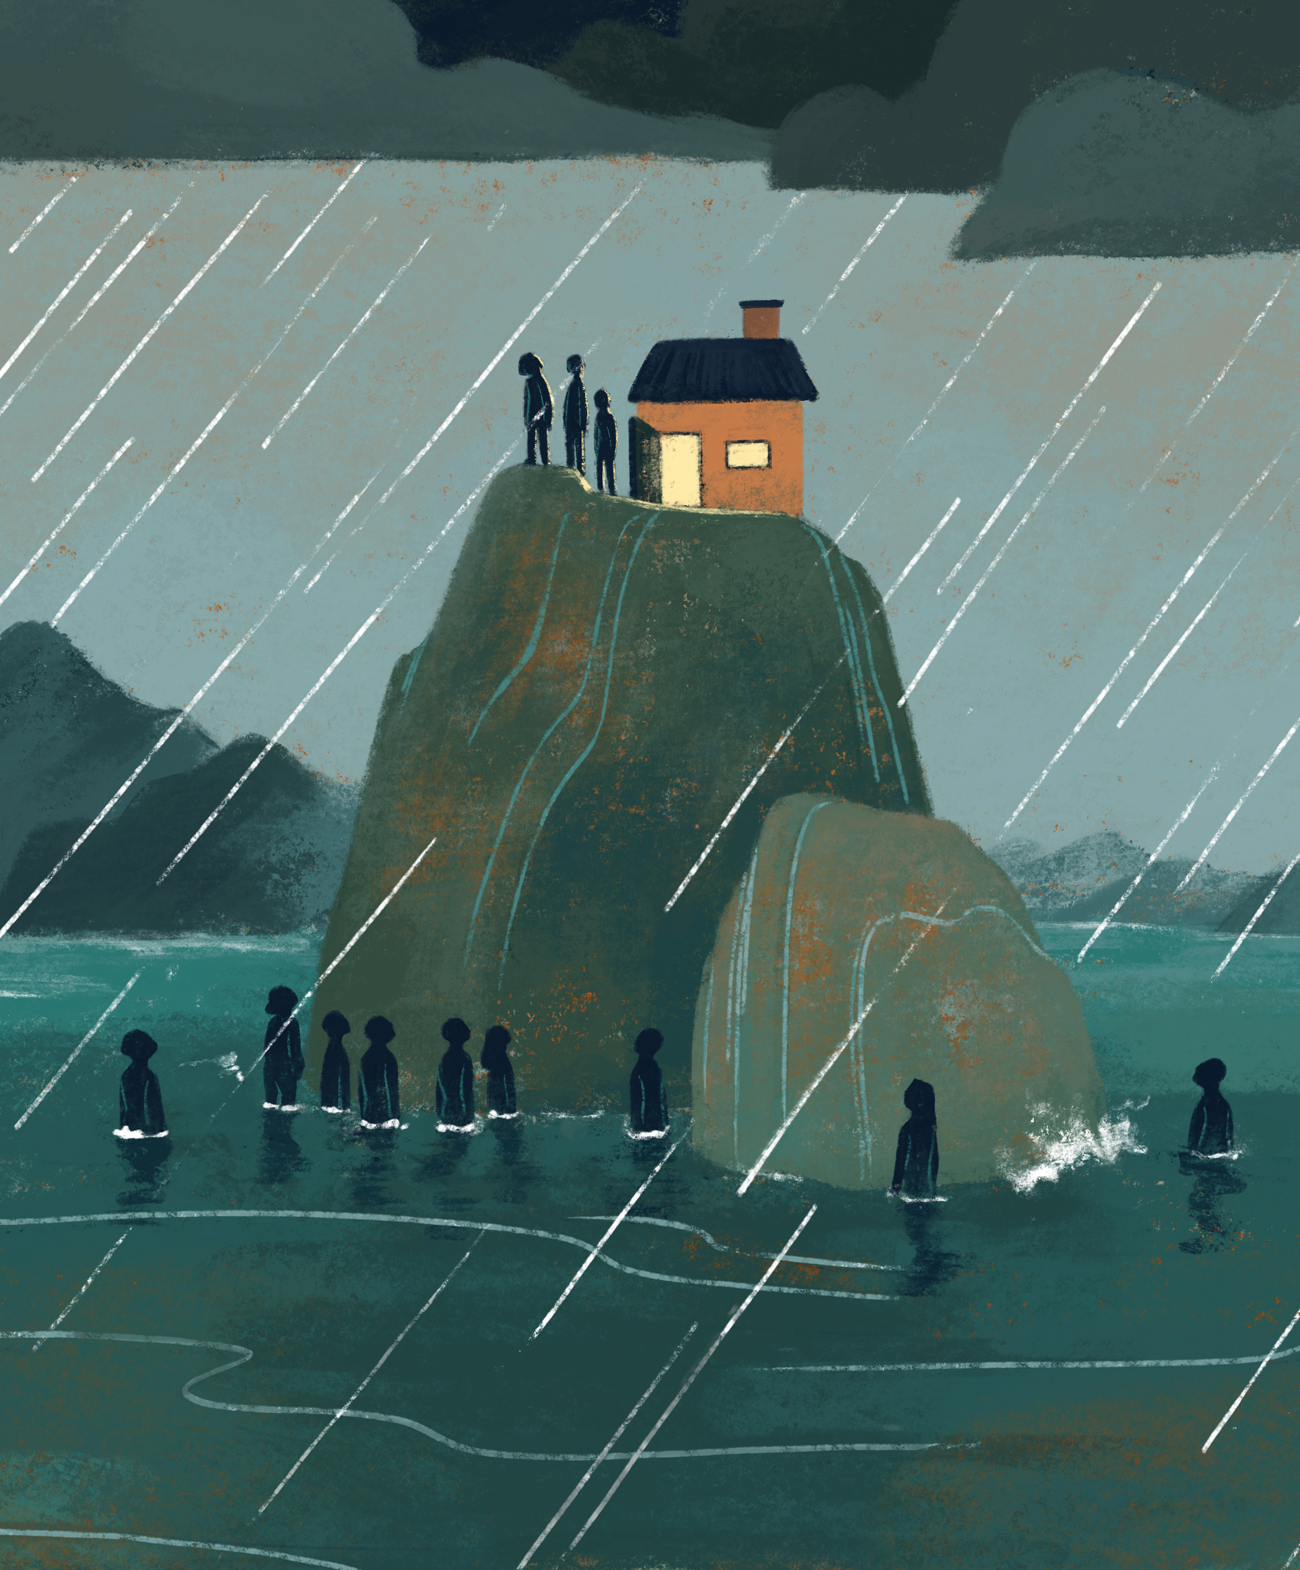 Illustration with dark clouds and rain, a very tall rock juts out of the water, on its top satnd a few people and a small building with an open door while at the base of the rock stand many people, waist deep in water